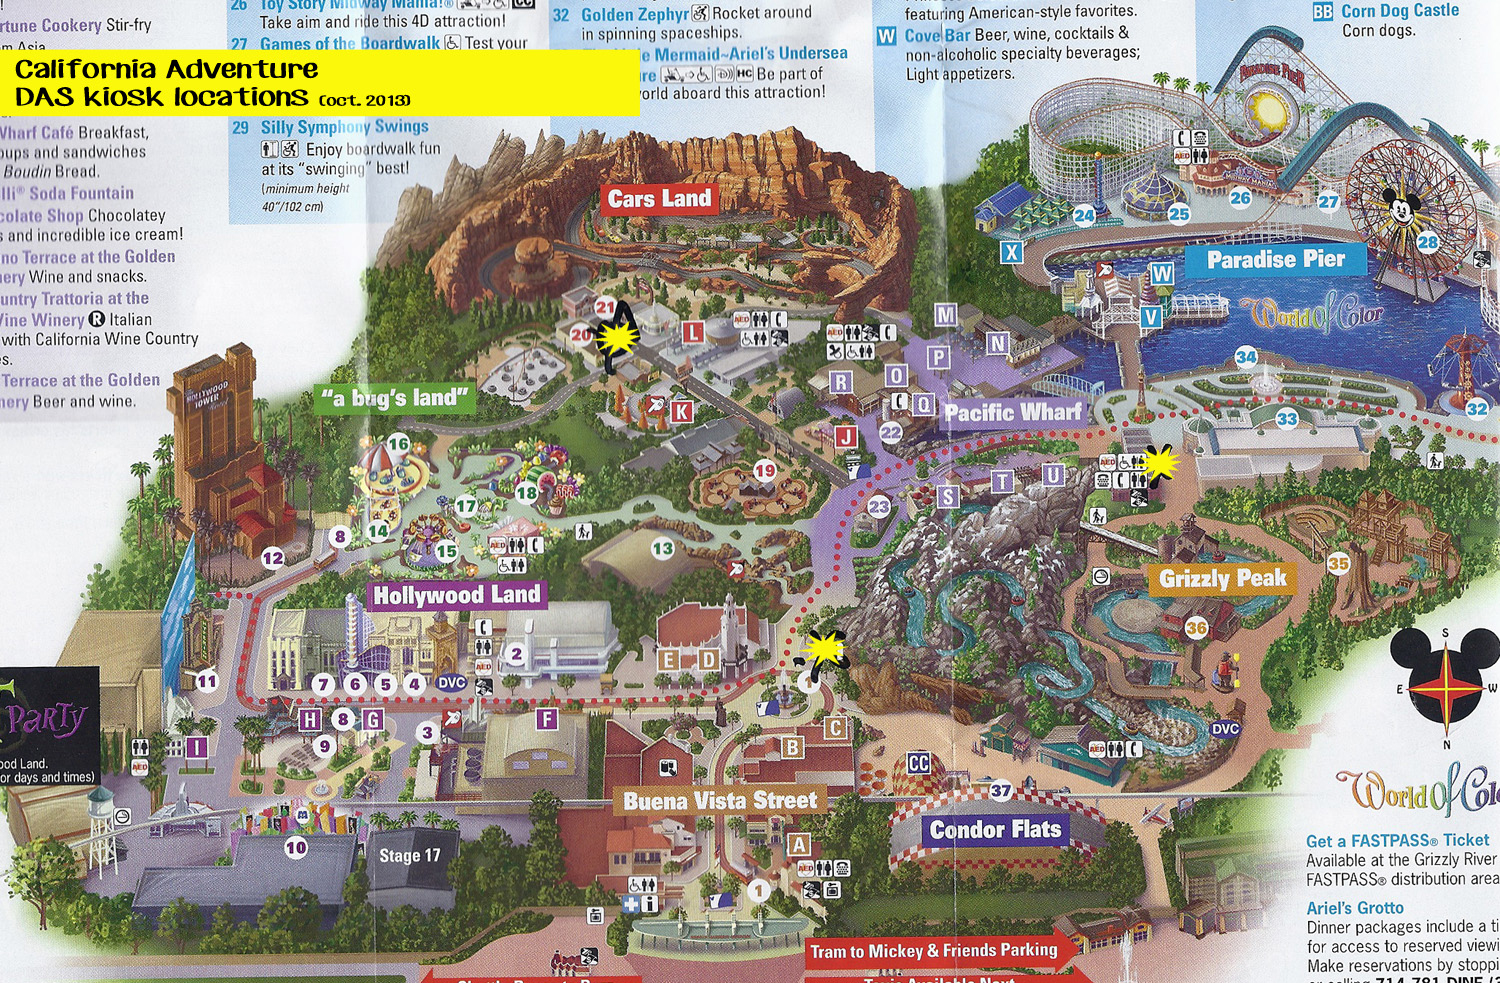 California Adventure Das Kiosk Locations Map Of Cities Printable Map - California Adventure Map 2017 Pdf